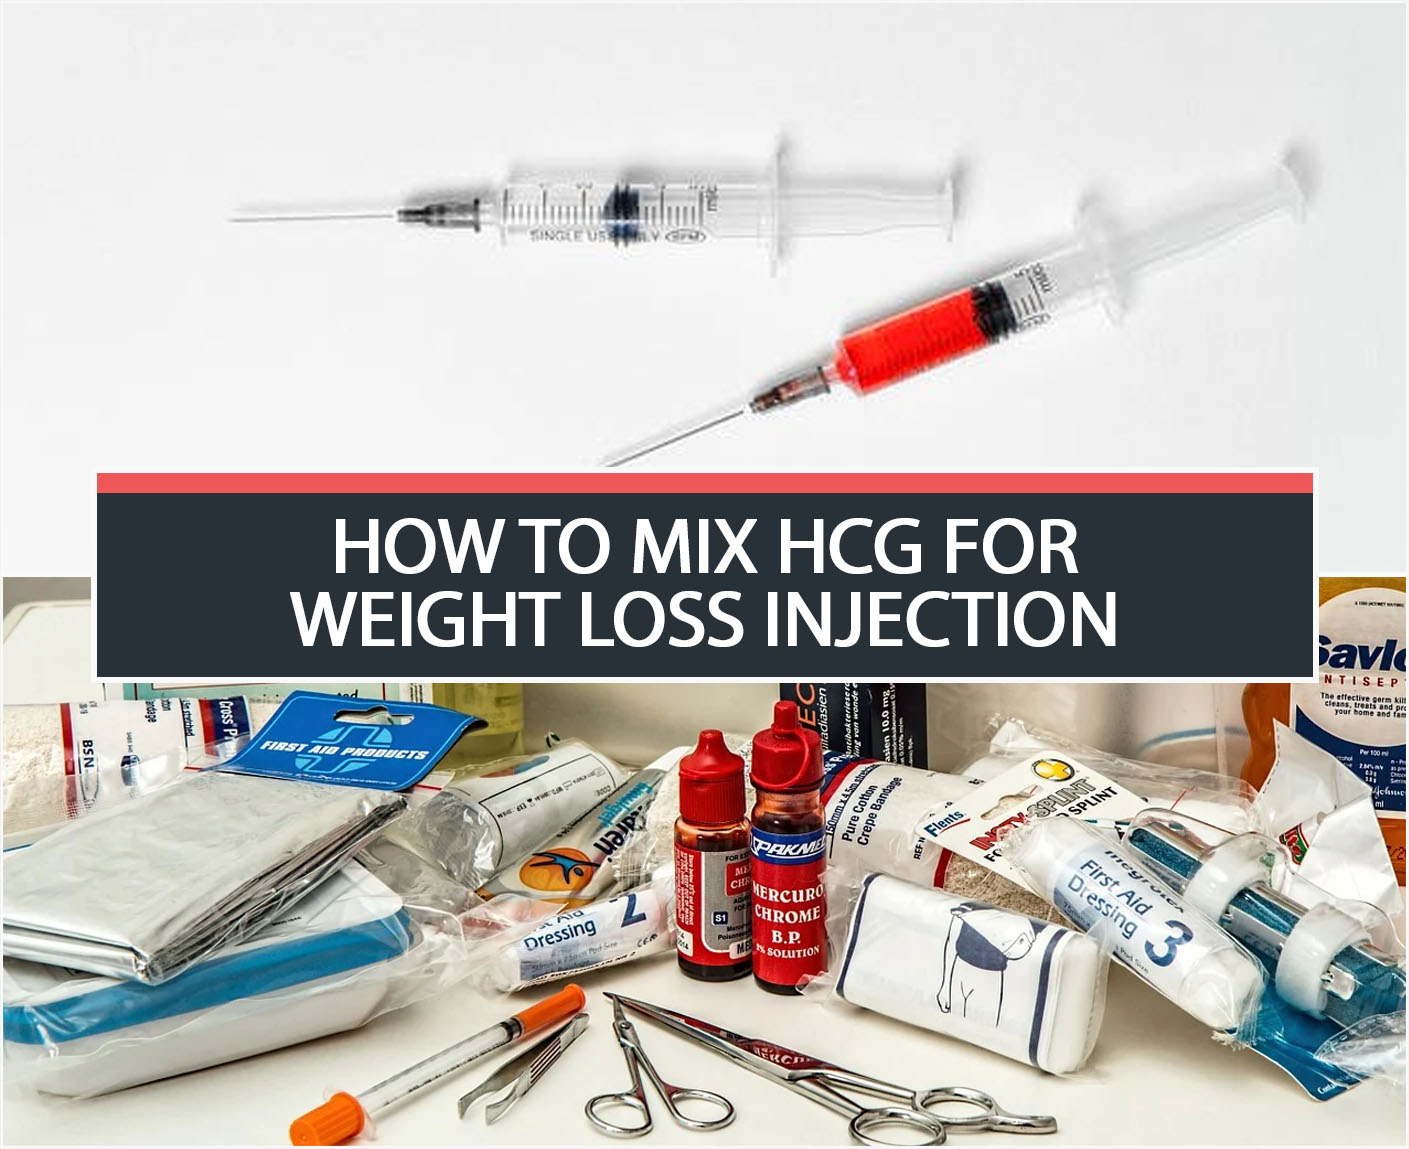 HOW TO MIX HCG FOR WEIGHT LOSS INJECTION?